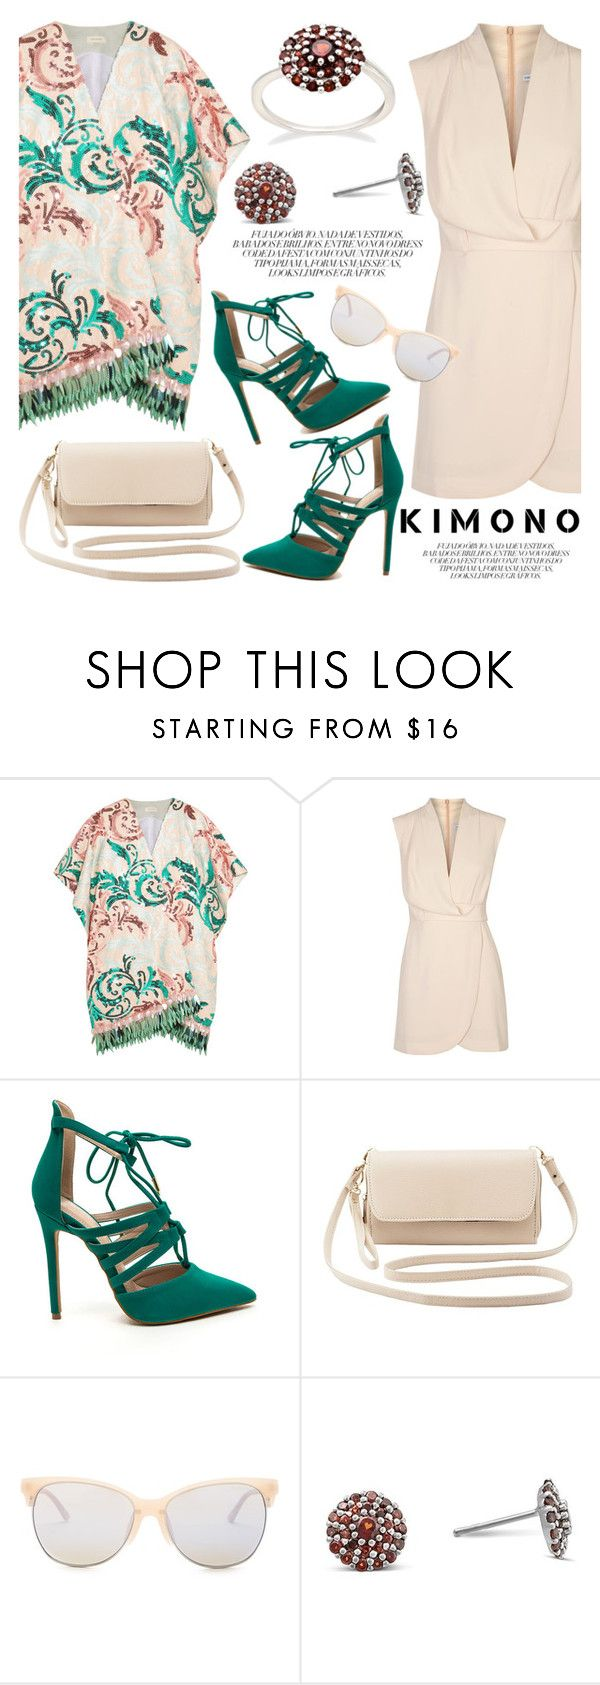 """""""Kimono Cool"""" by blossom-jewels ❤ liked on Polyvore featuring Delpozo, Finders Keepers, Charlotte Russe, Smith Optics, contestentry, kimonos and Blossomjewels"""